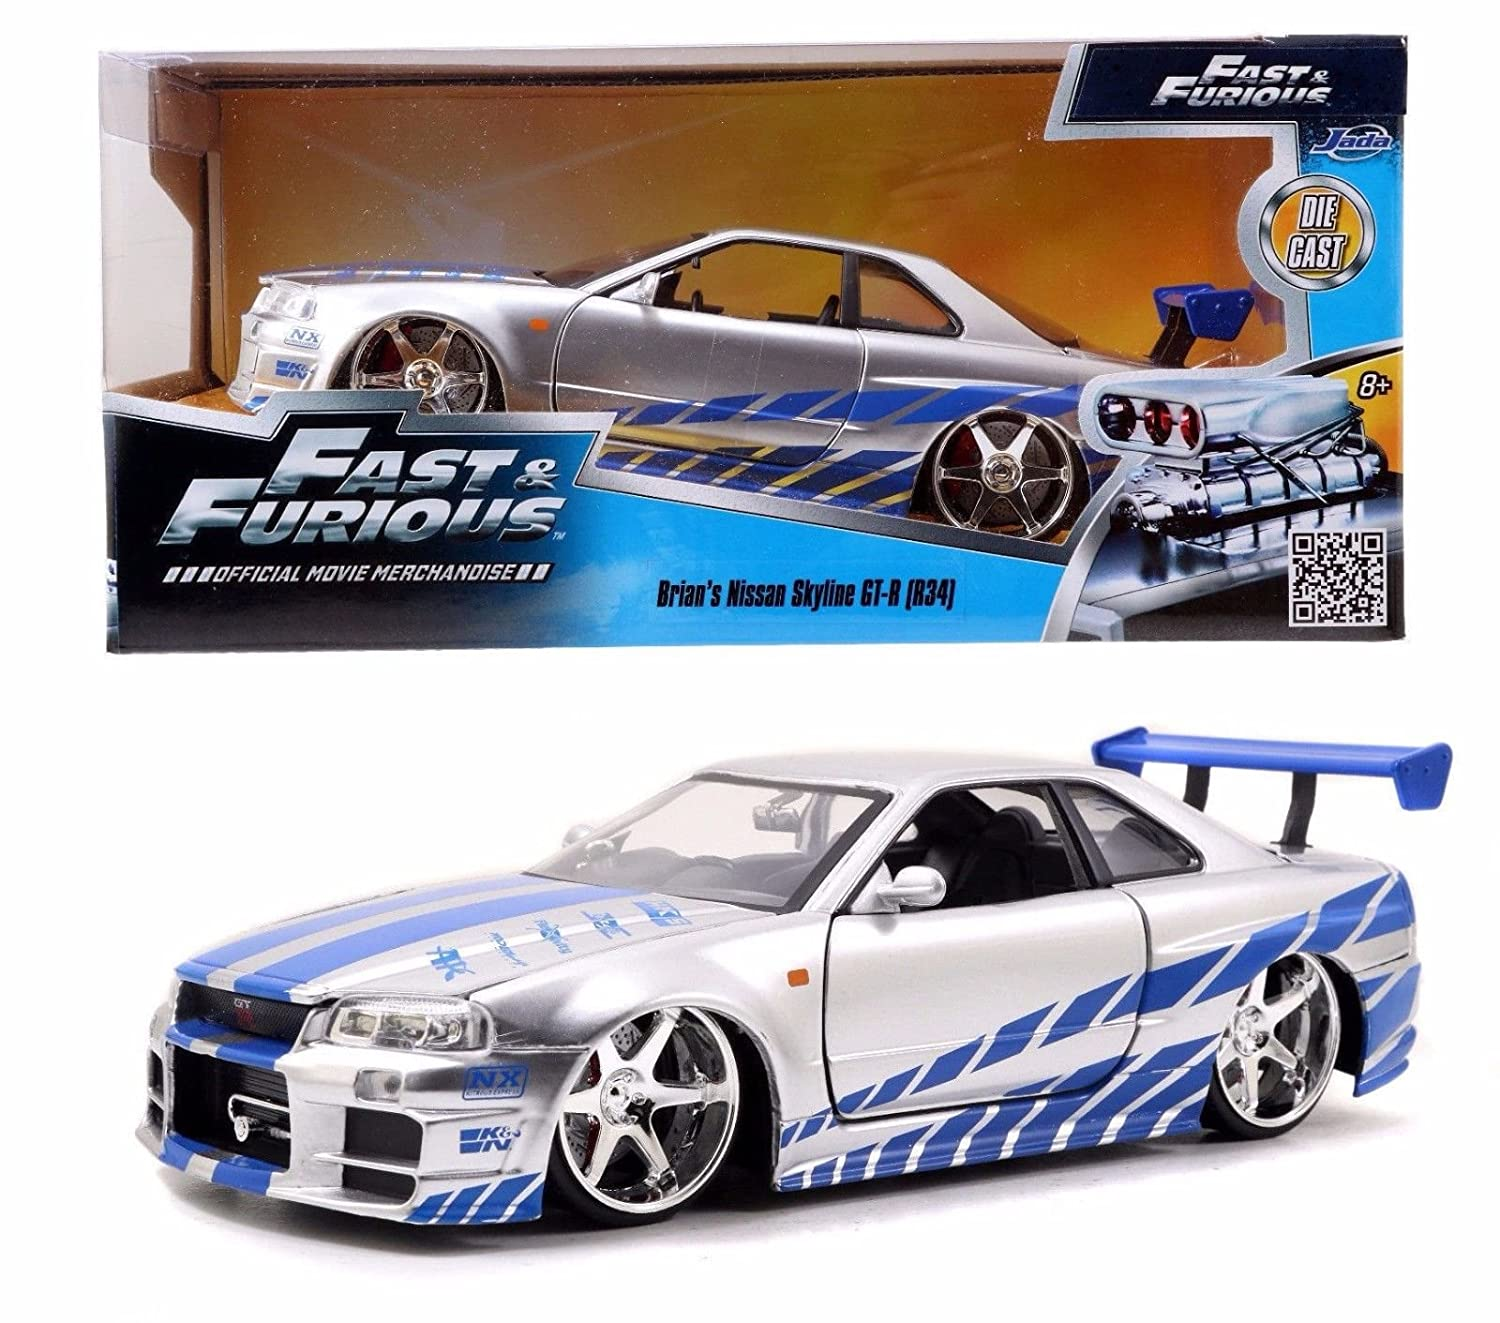 nissan skyline fast and furious 7. amazoncom new 124 fast u0026 furious brianu0027s 2002 nissan skyline gtr r34 diecast model car by jada toys games and 7 u